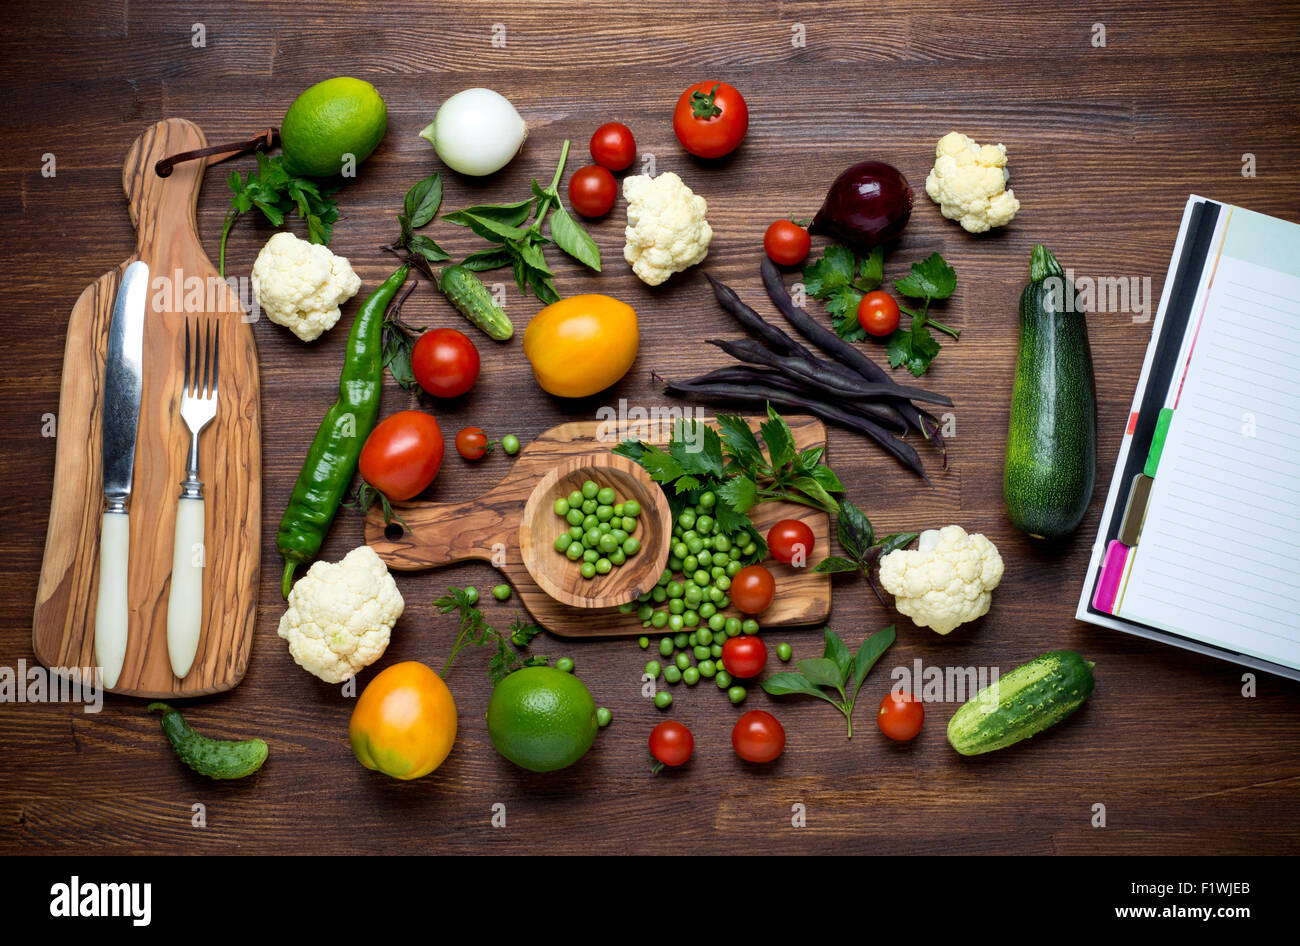 Healthy food herbs and vegetables on wooden table with